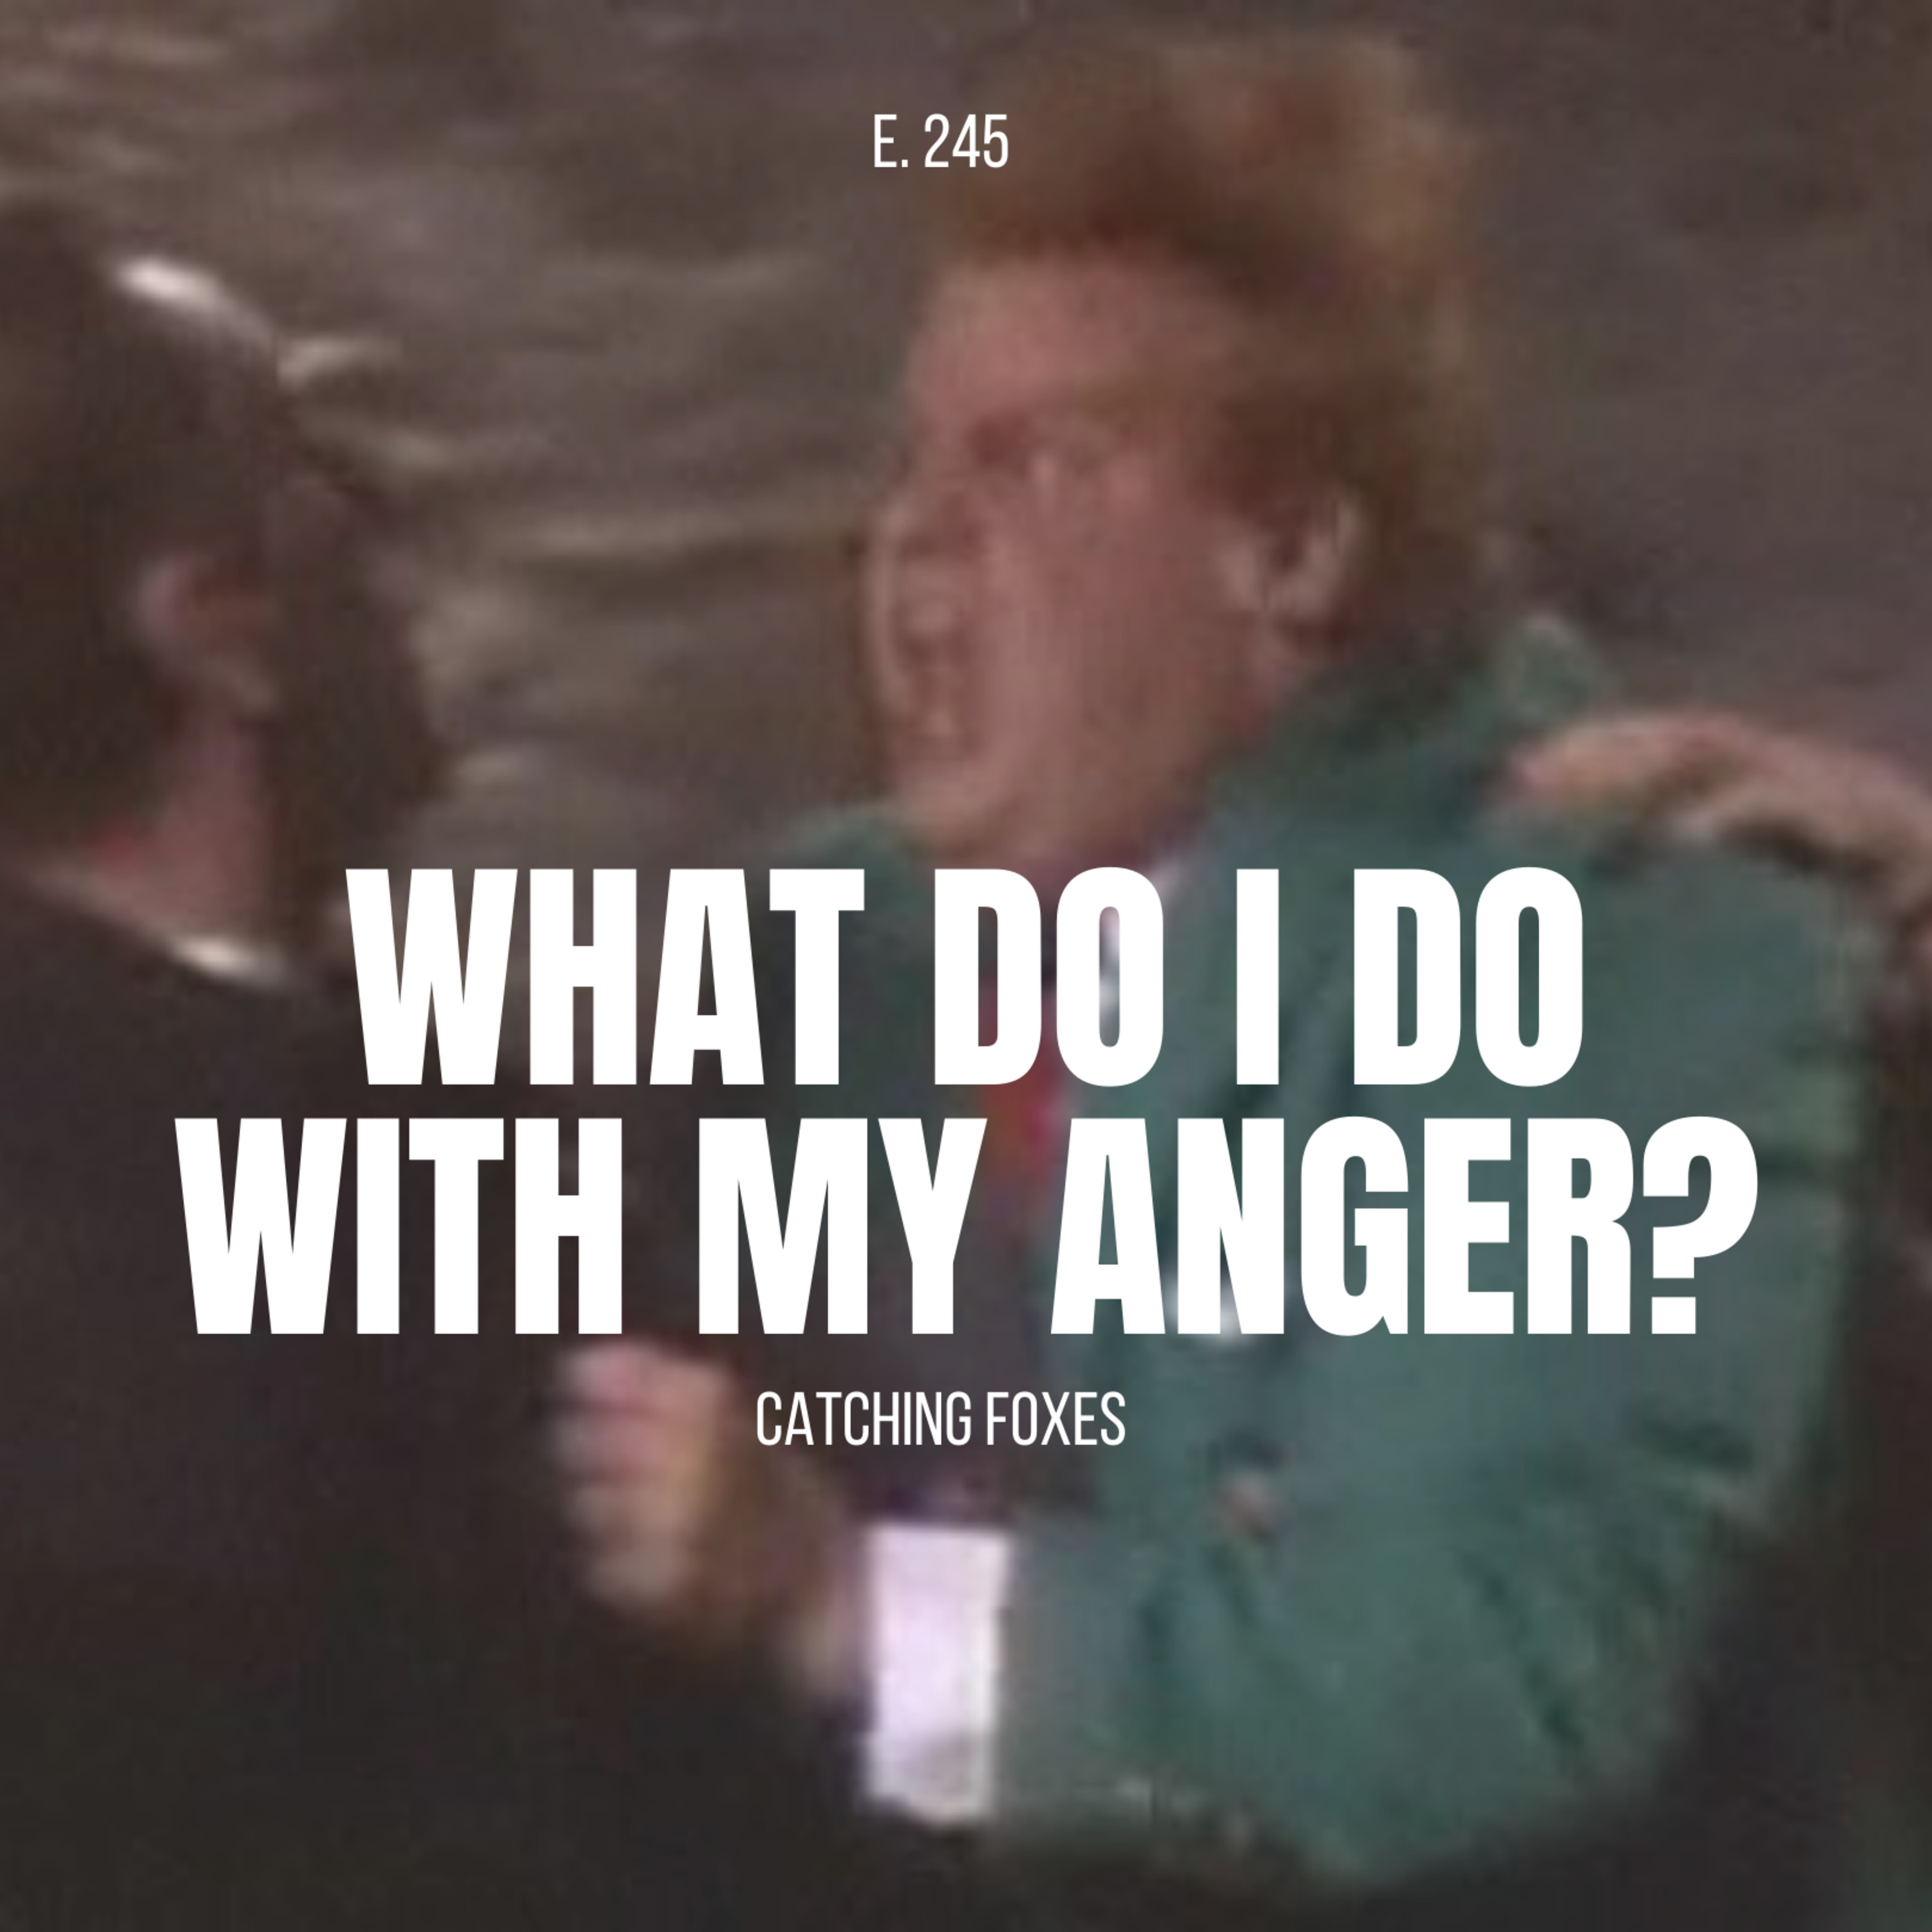 What do I do with my ANGER